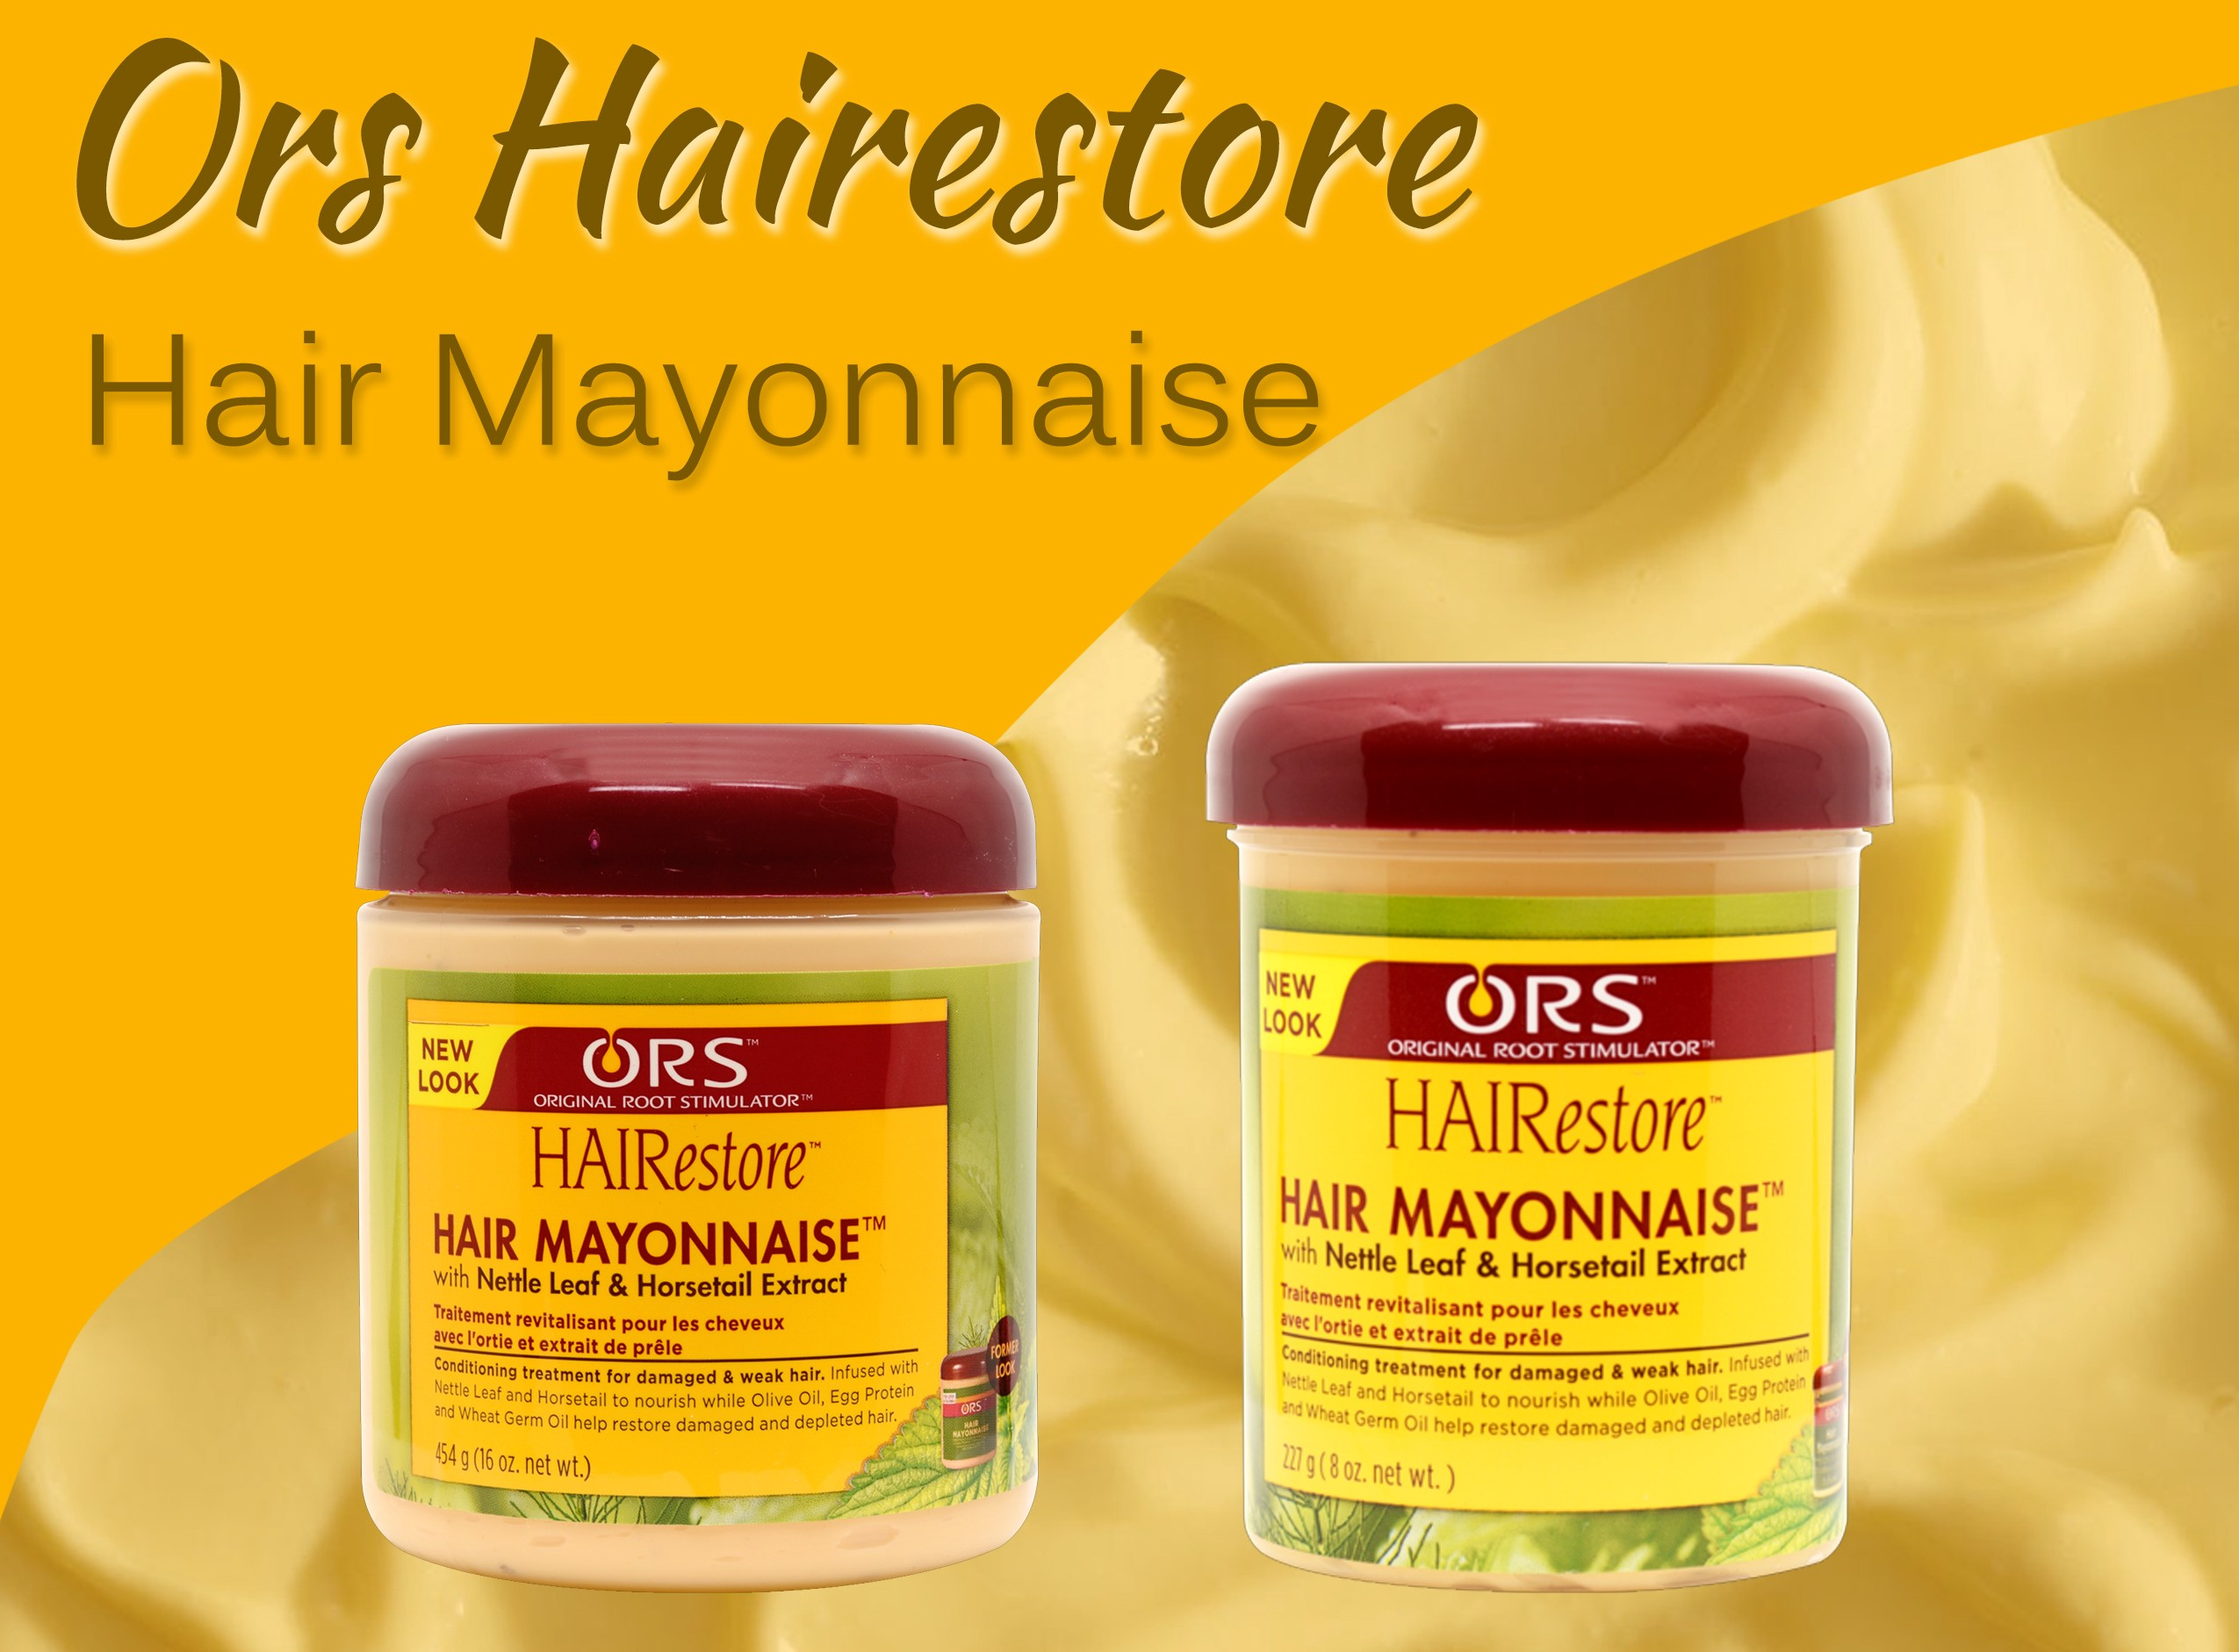 ors hairestore hair mayonnaise - ram bhavlekar - medium